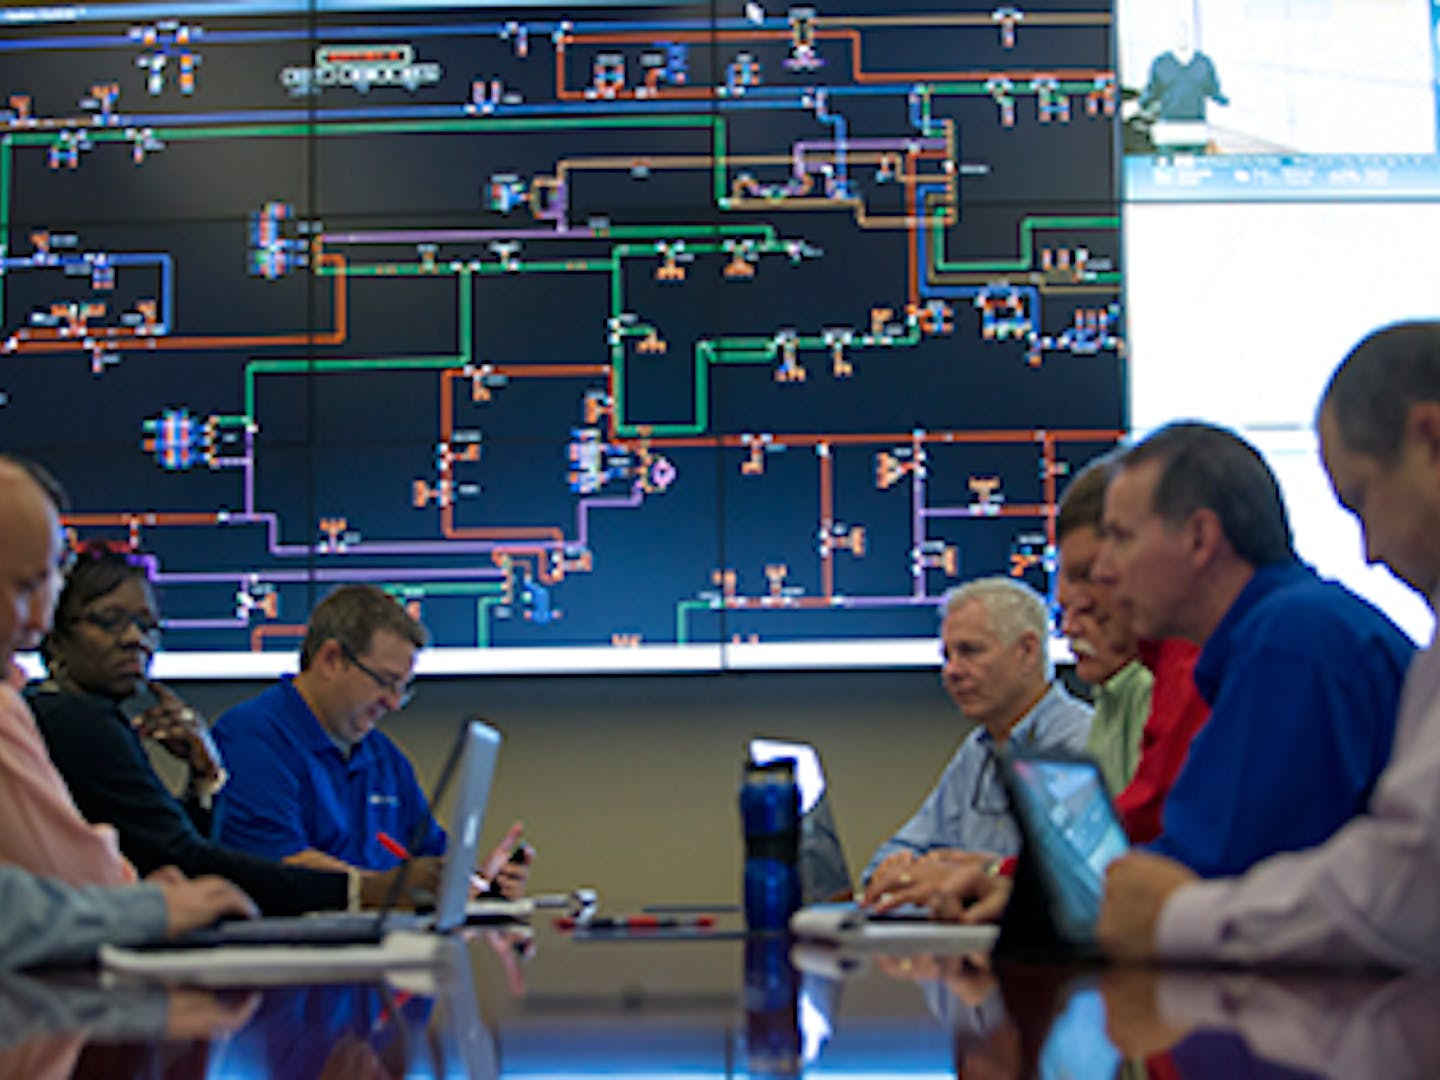 chattanooga-s-smart-grid-receives-peer-certification-for-performance-efficiency-and-customer-value.jpeg